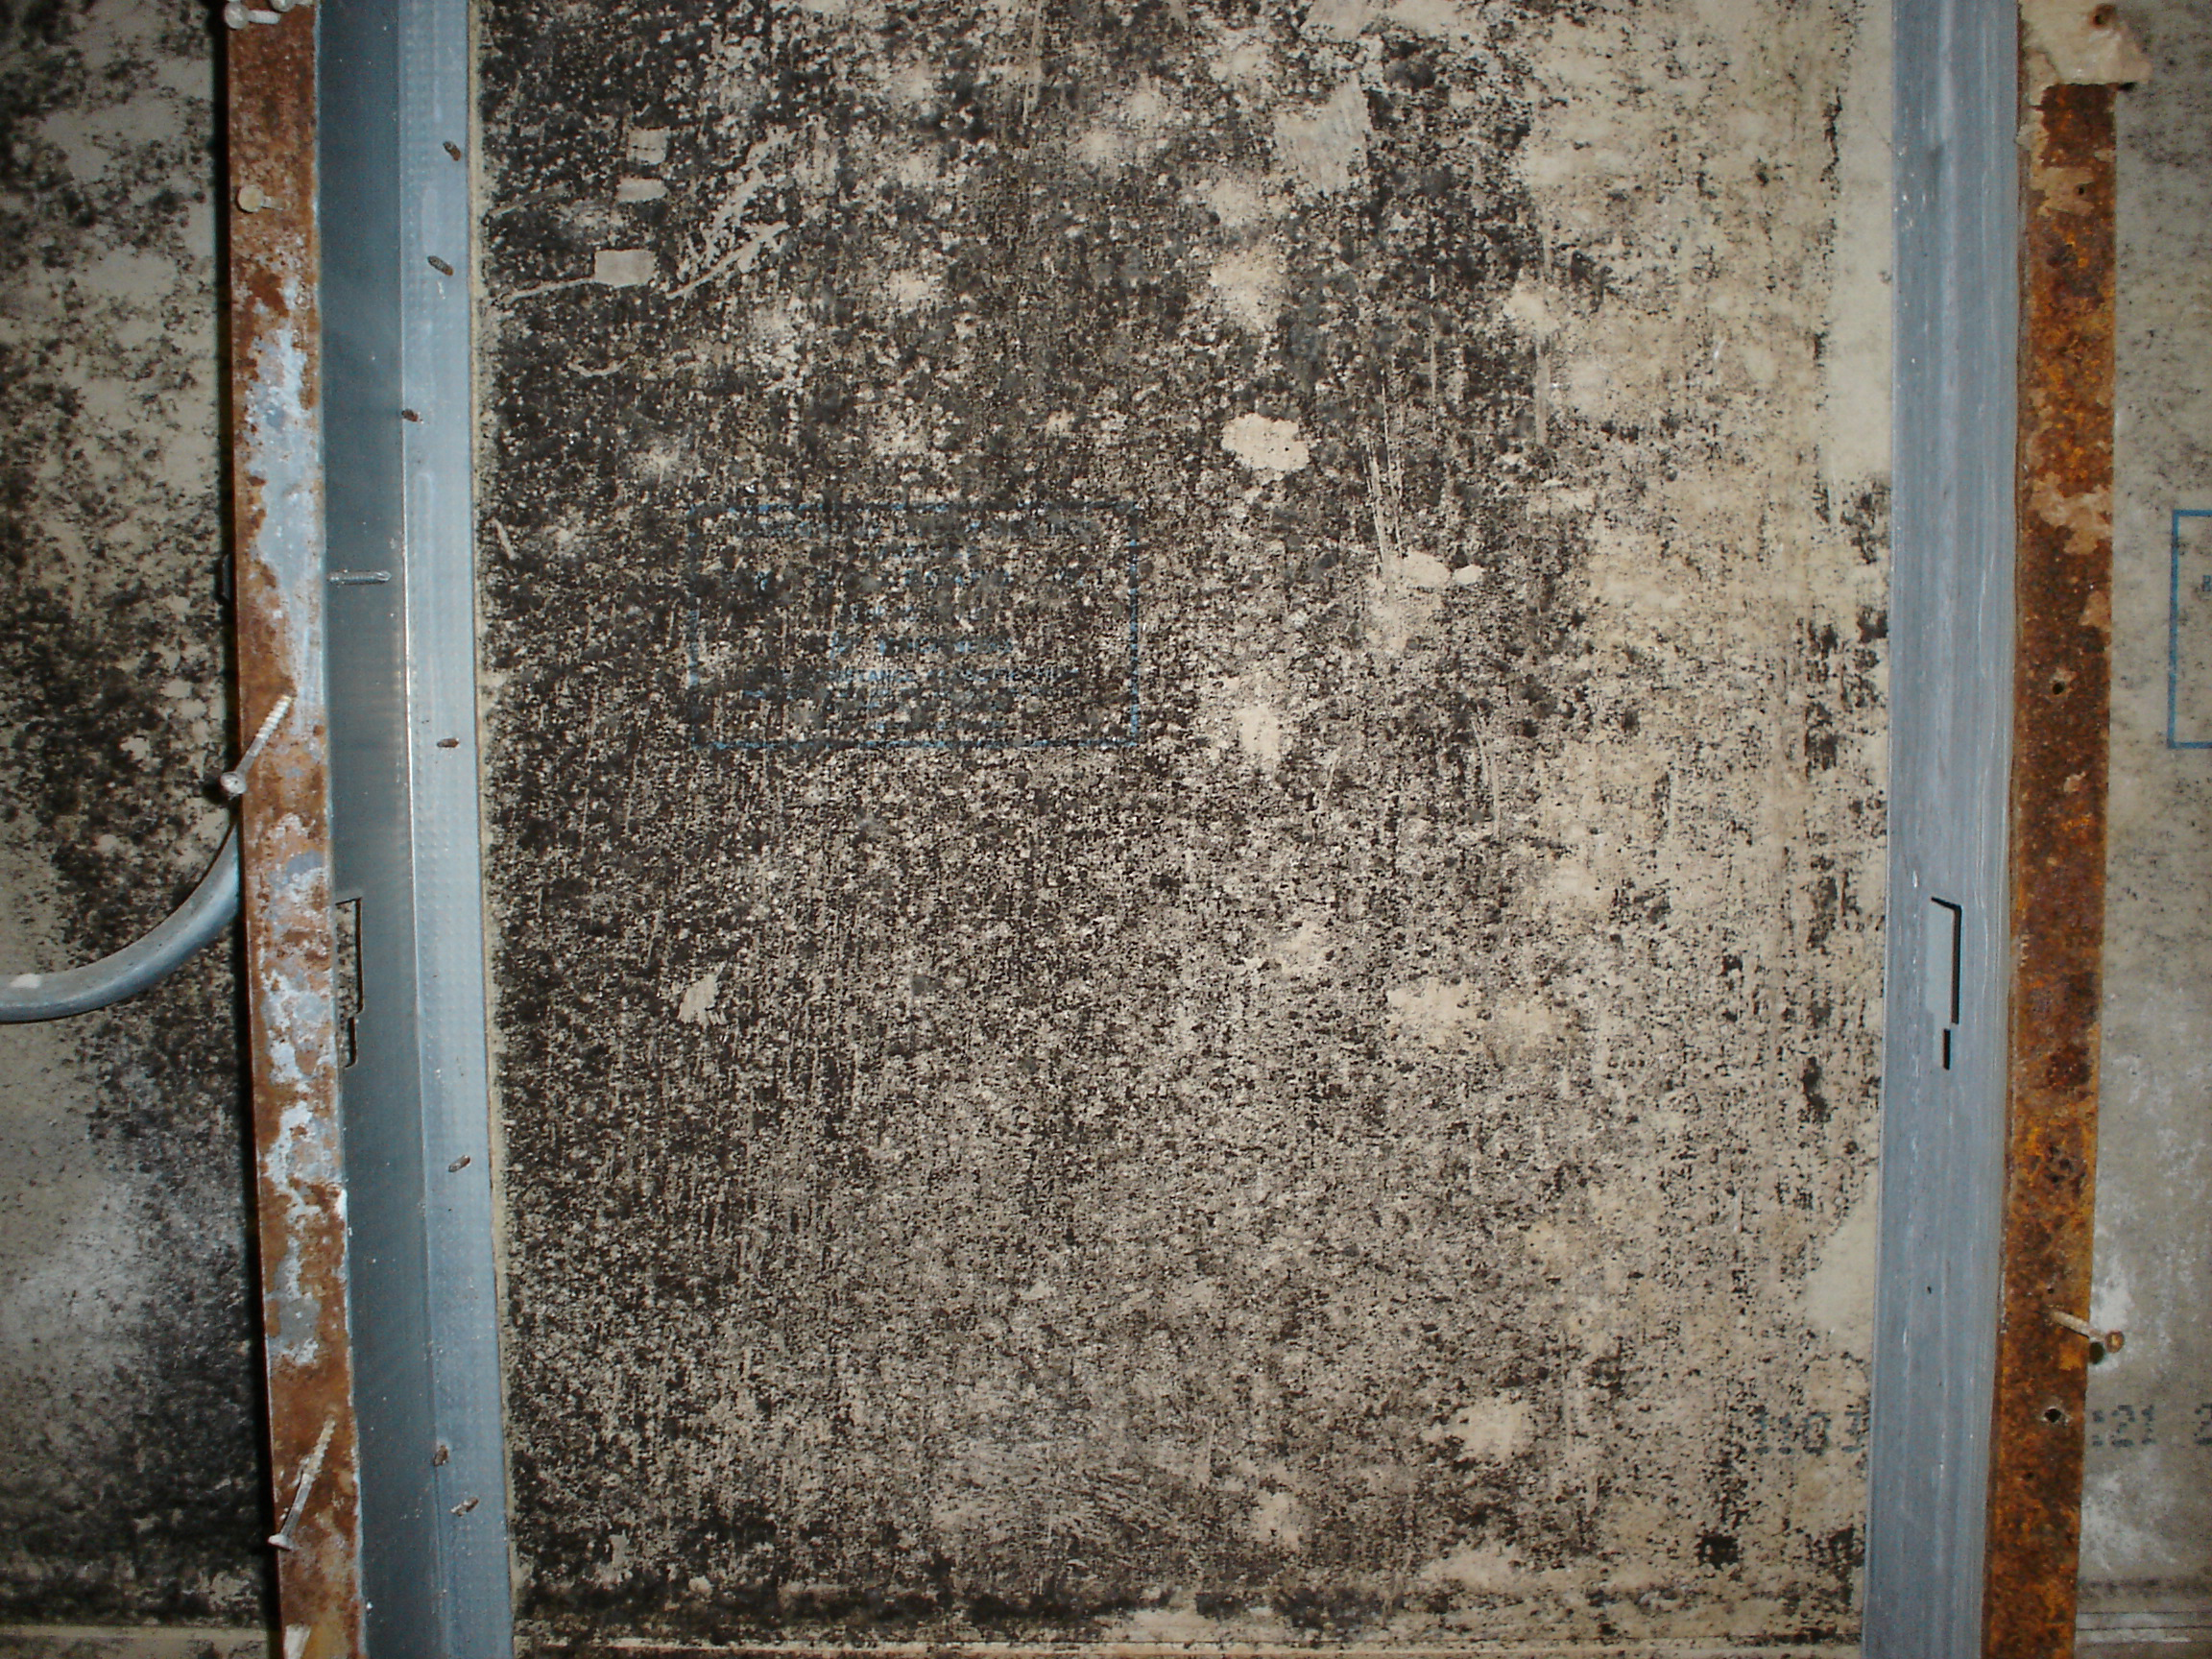 Hidden Moisture Problems Put Students Health At Risk For Exposure To Toxic Mold Attention